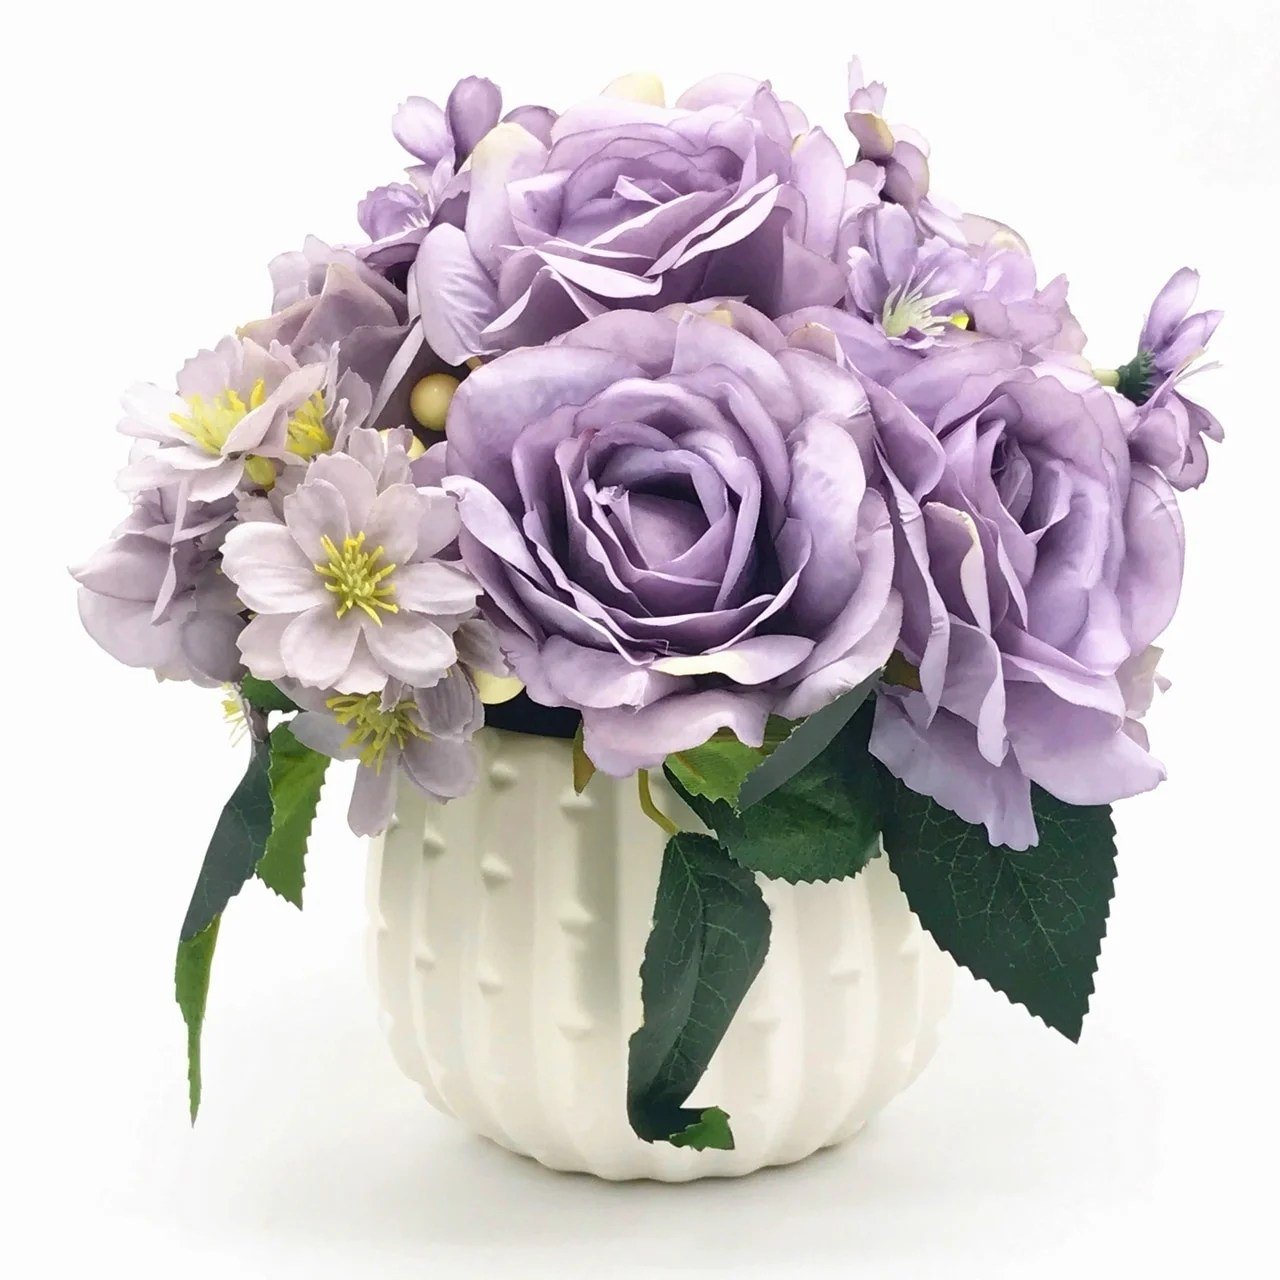 Shop Enova Home Purple Open Rose And Mixed Silk Artificial Flower Arrangement With White Ceramic Vase Overstock 27869323